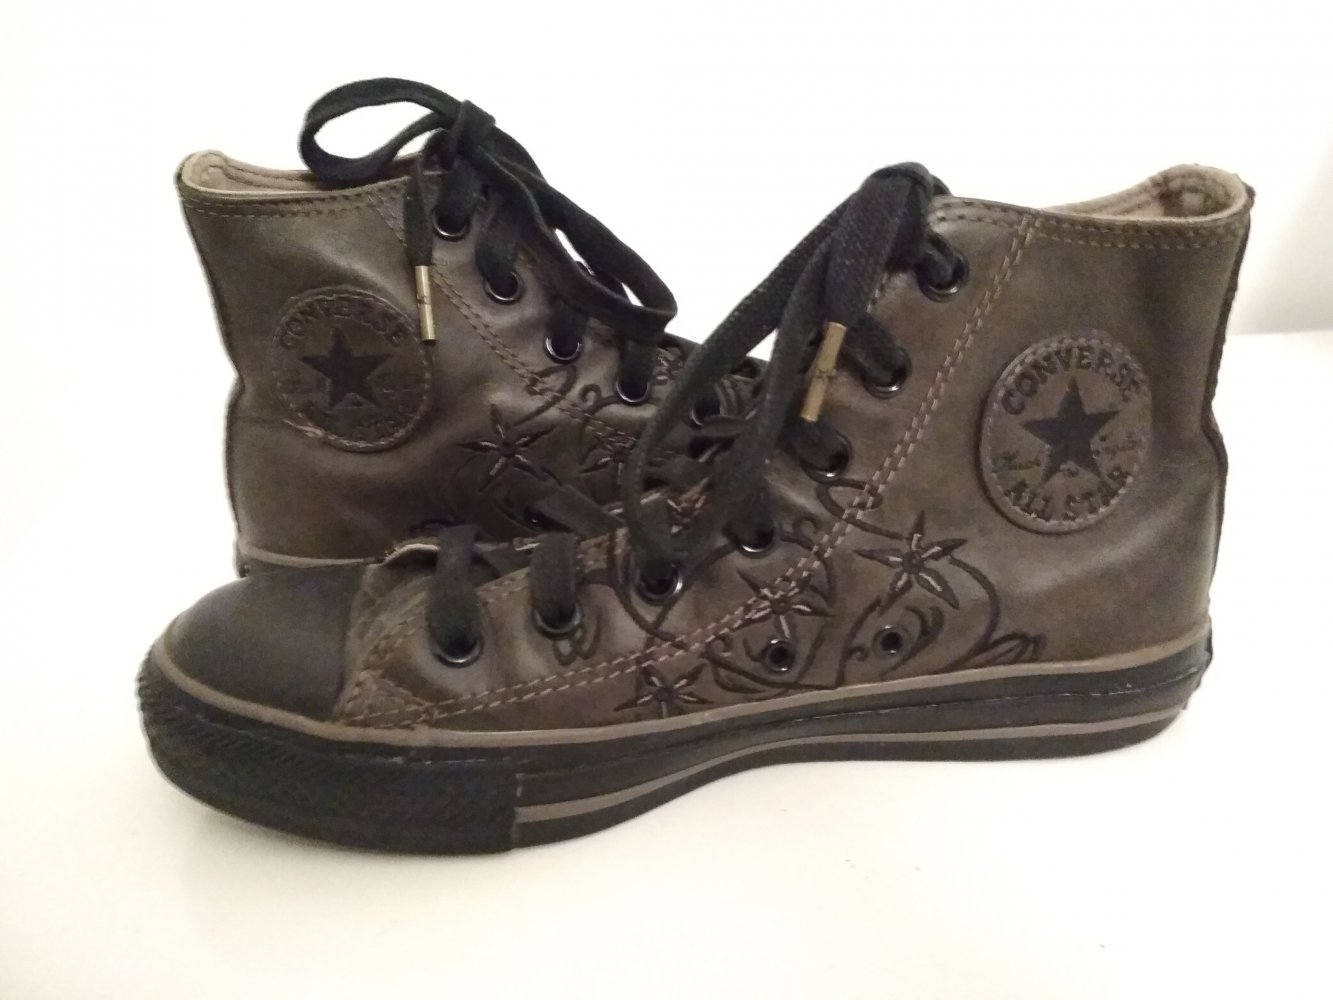 Converse Chucks Gr. 38 UK 5,5 US 7,5 braun Leder Stickerei